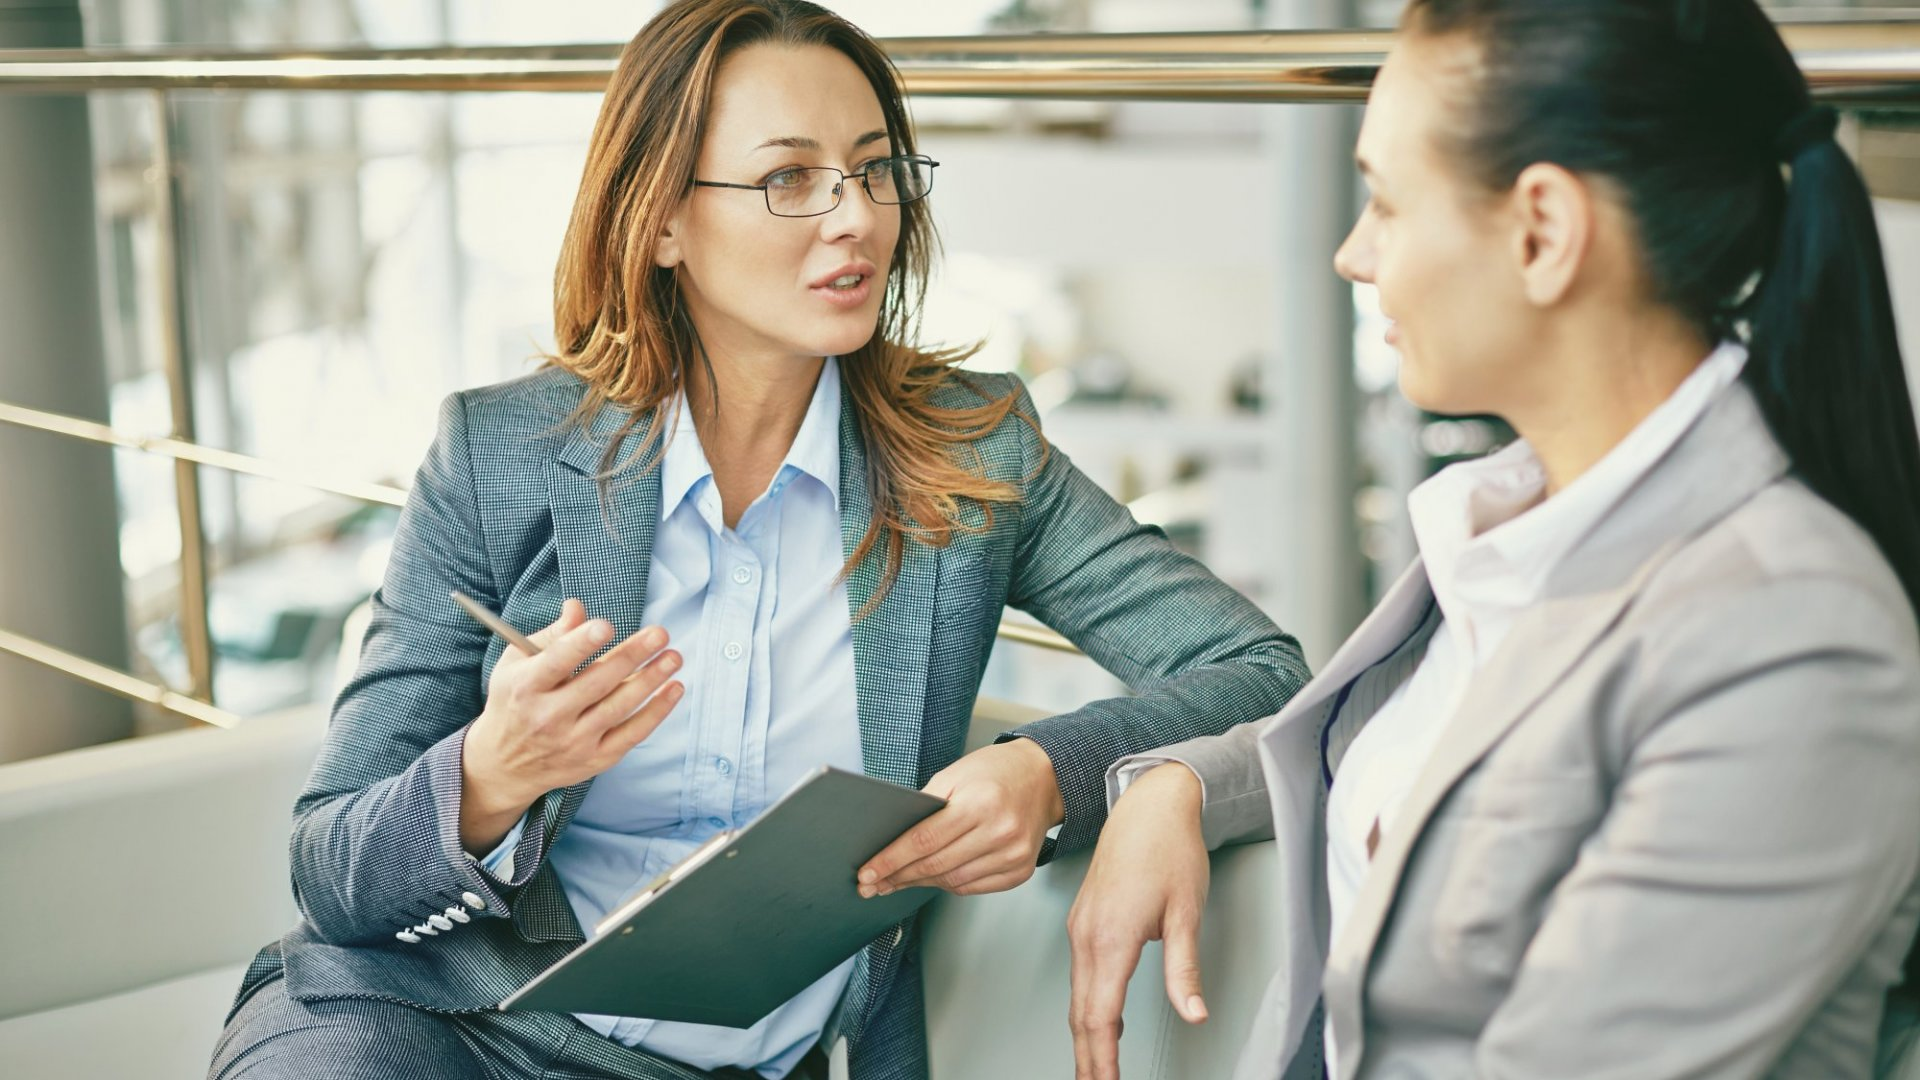 Ask Your Job Candidates This One Interview Question to Learn if They Are Worth Hiring